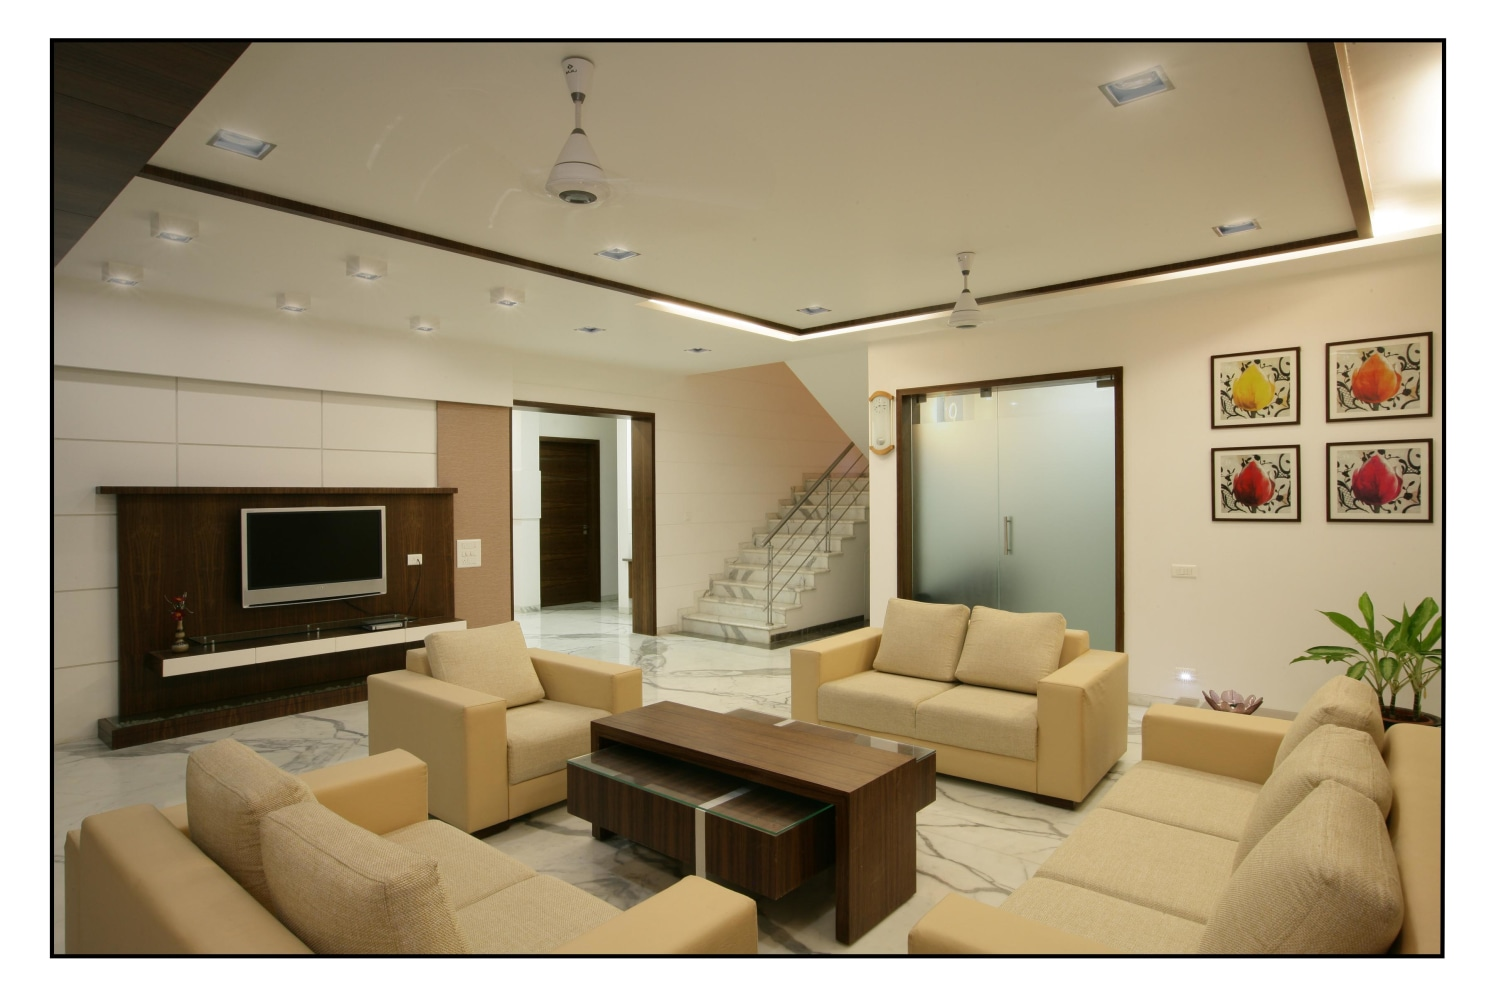 The Hues of Brown by RS Design Living-room Modern | Interior Design Photos & Ideas